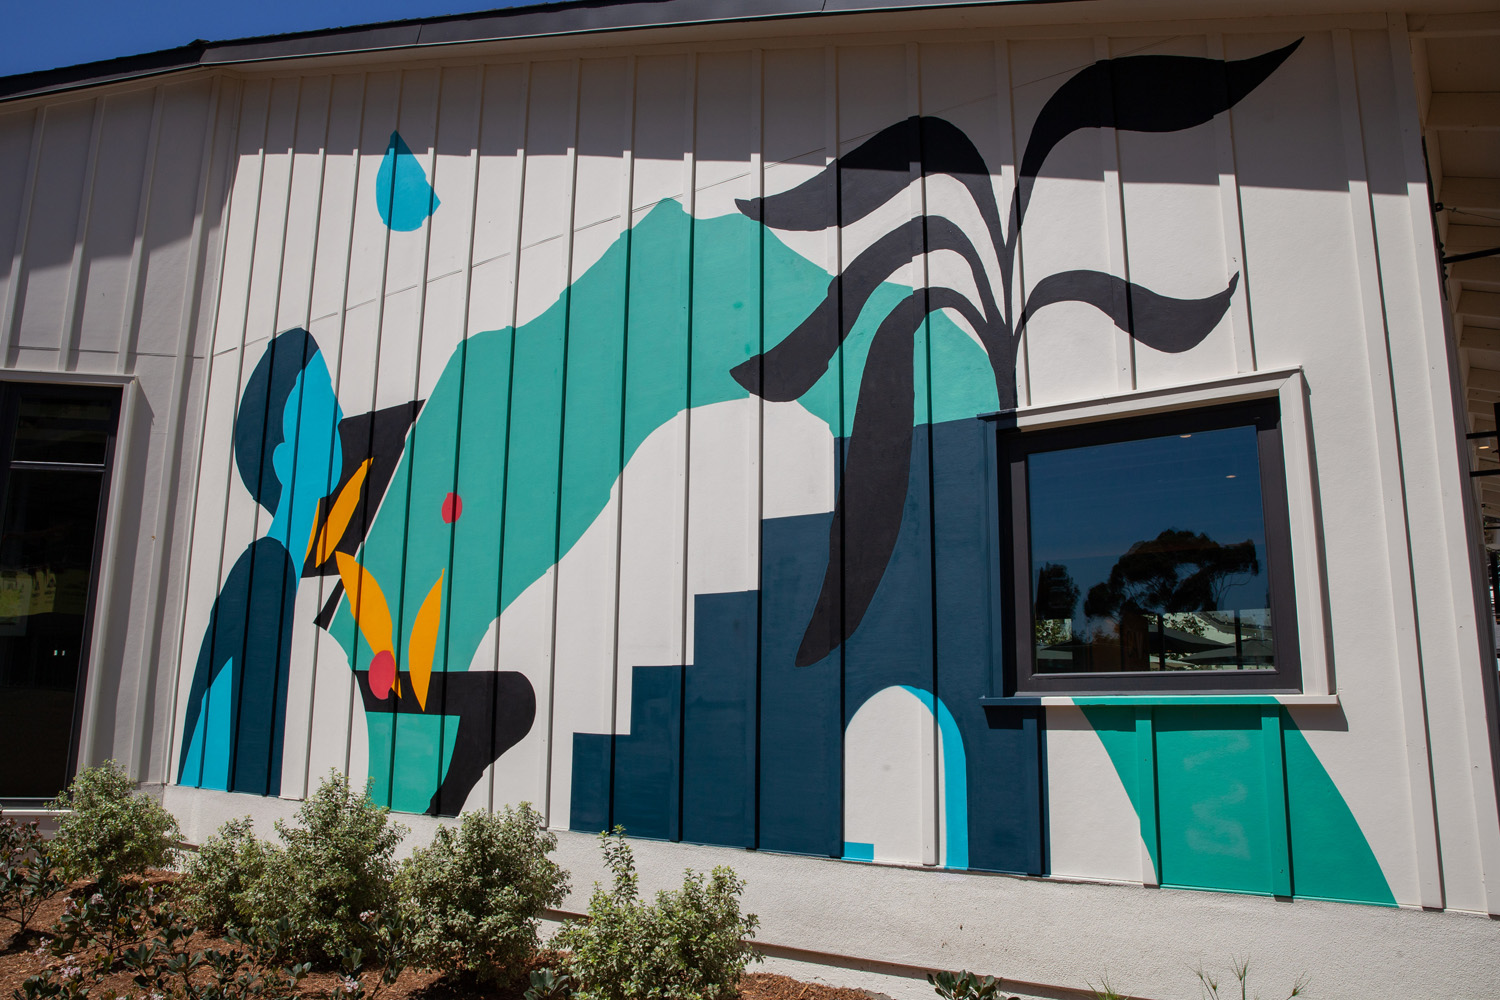 Outdoor Mural Art for Cava